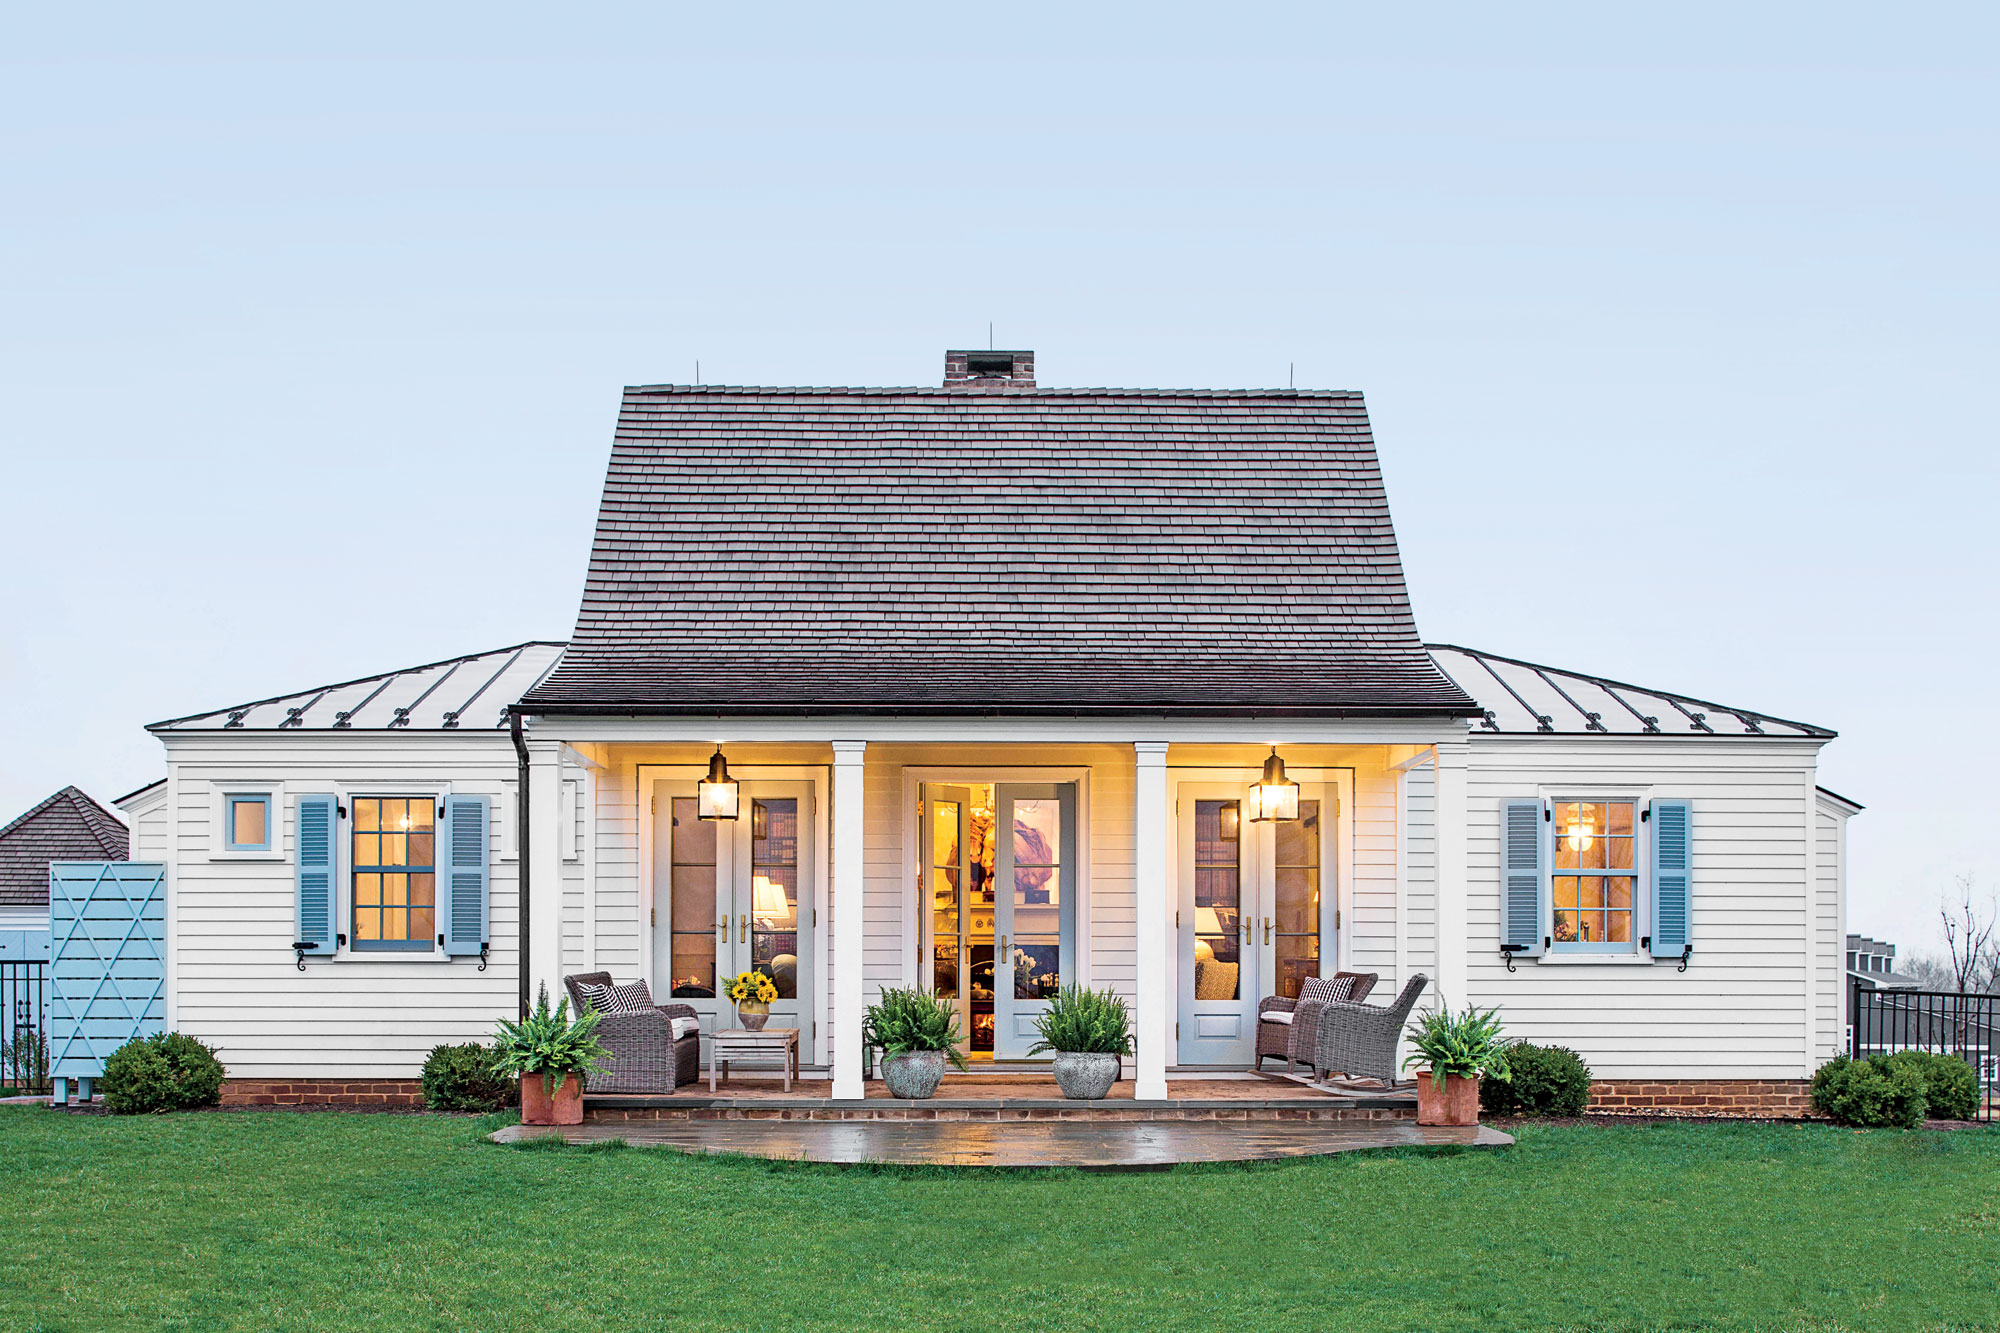 exterior colors for homes 2015. genteel cottage exterior colors for homes 2015